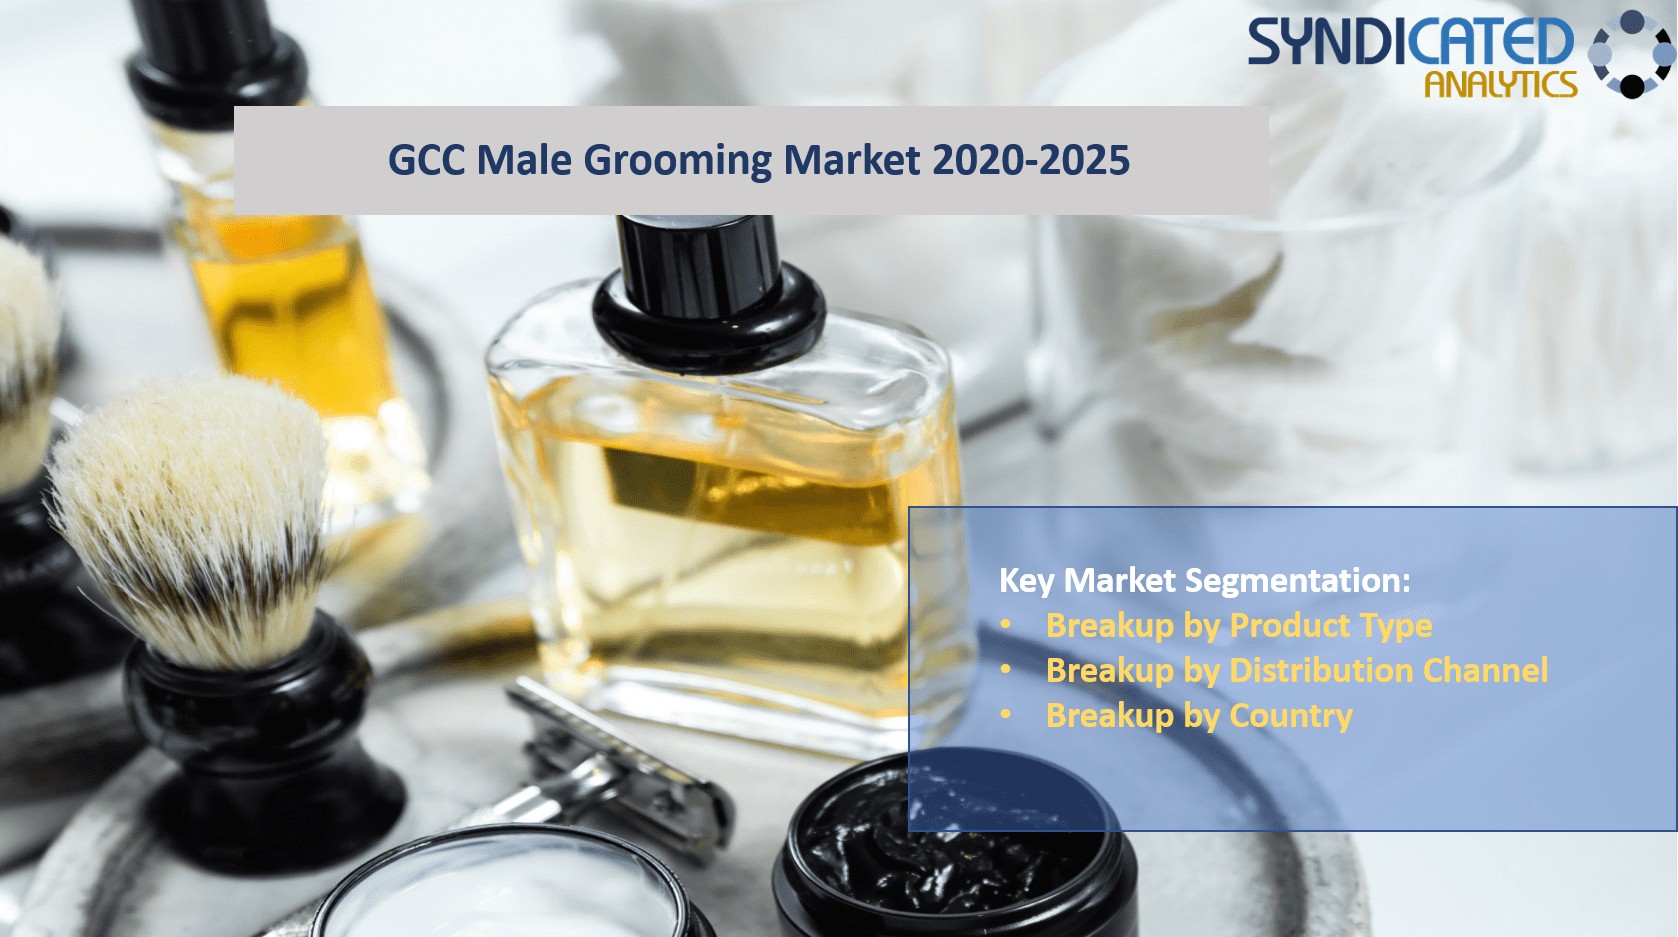 GCC Male Grooming Market Report 2020-2025